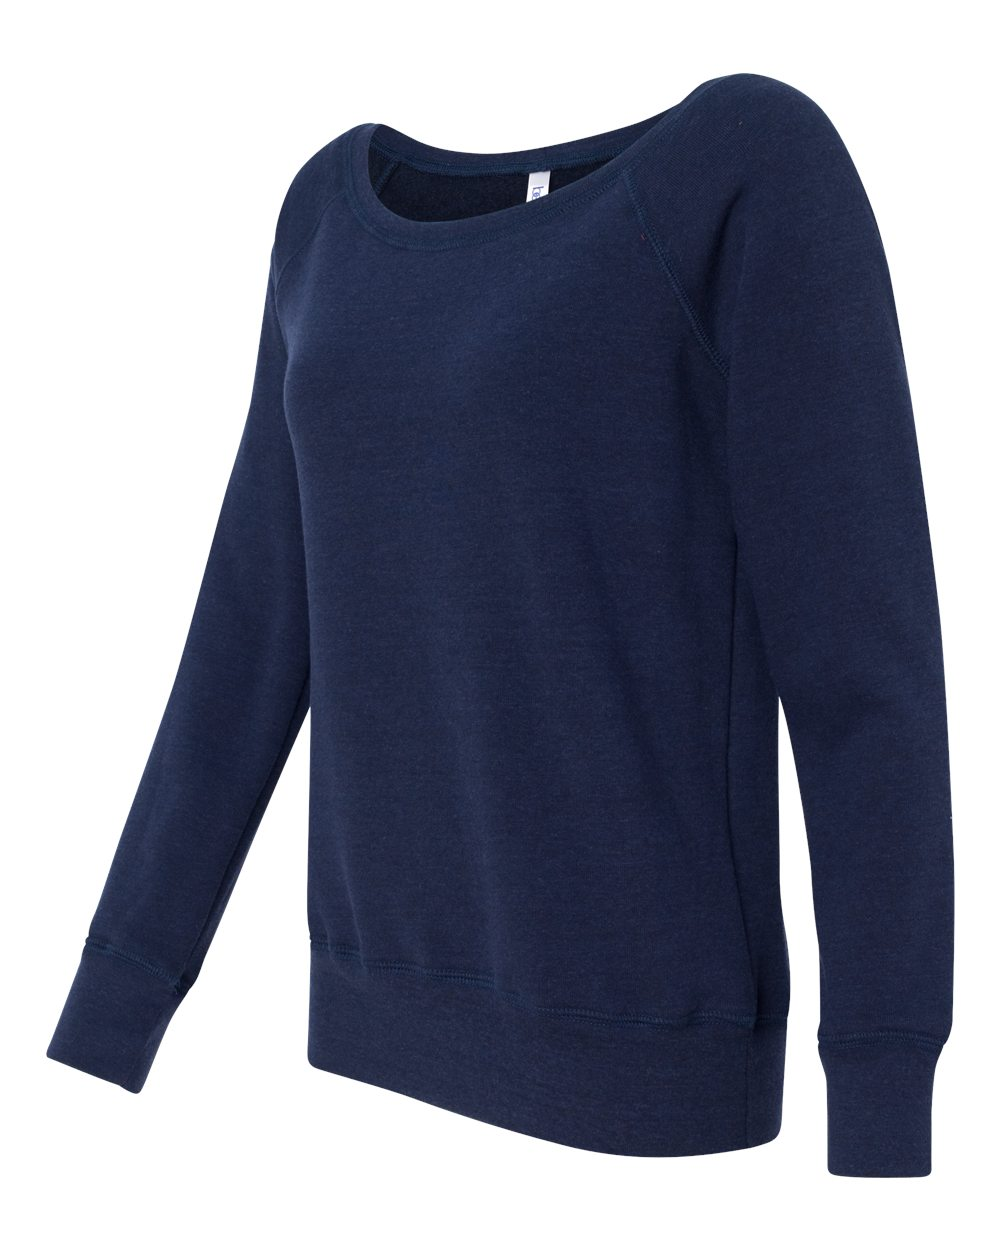 Bella dames trui 7501 Navy Heather